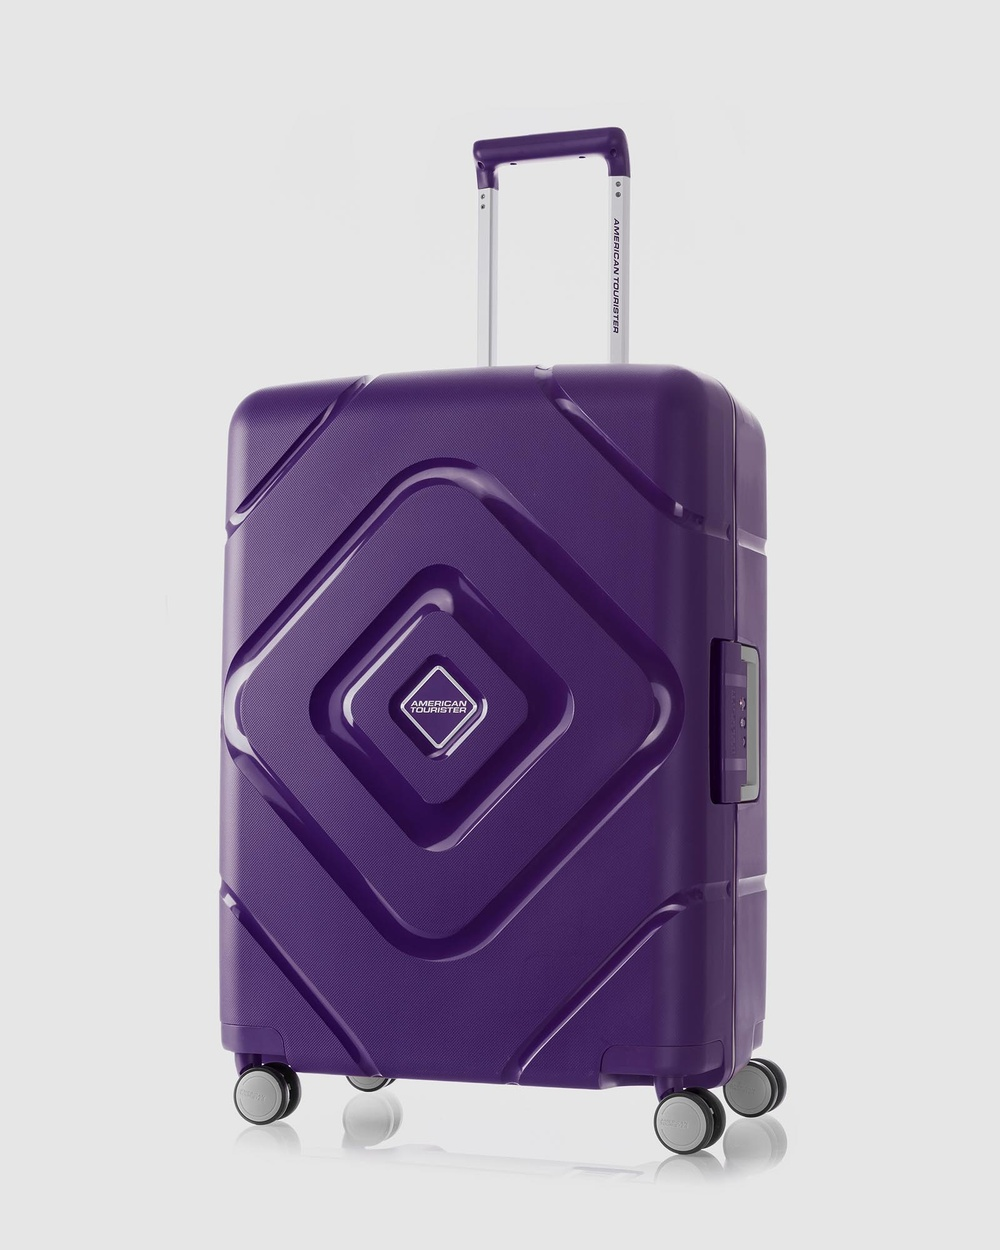 American Tourister Trigard Spinner 66 24 TSA Travel and Luggage Purple 66-24